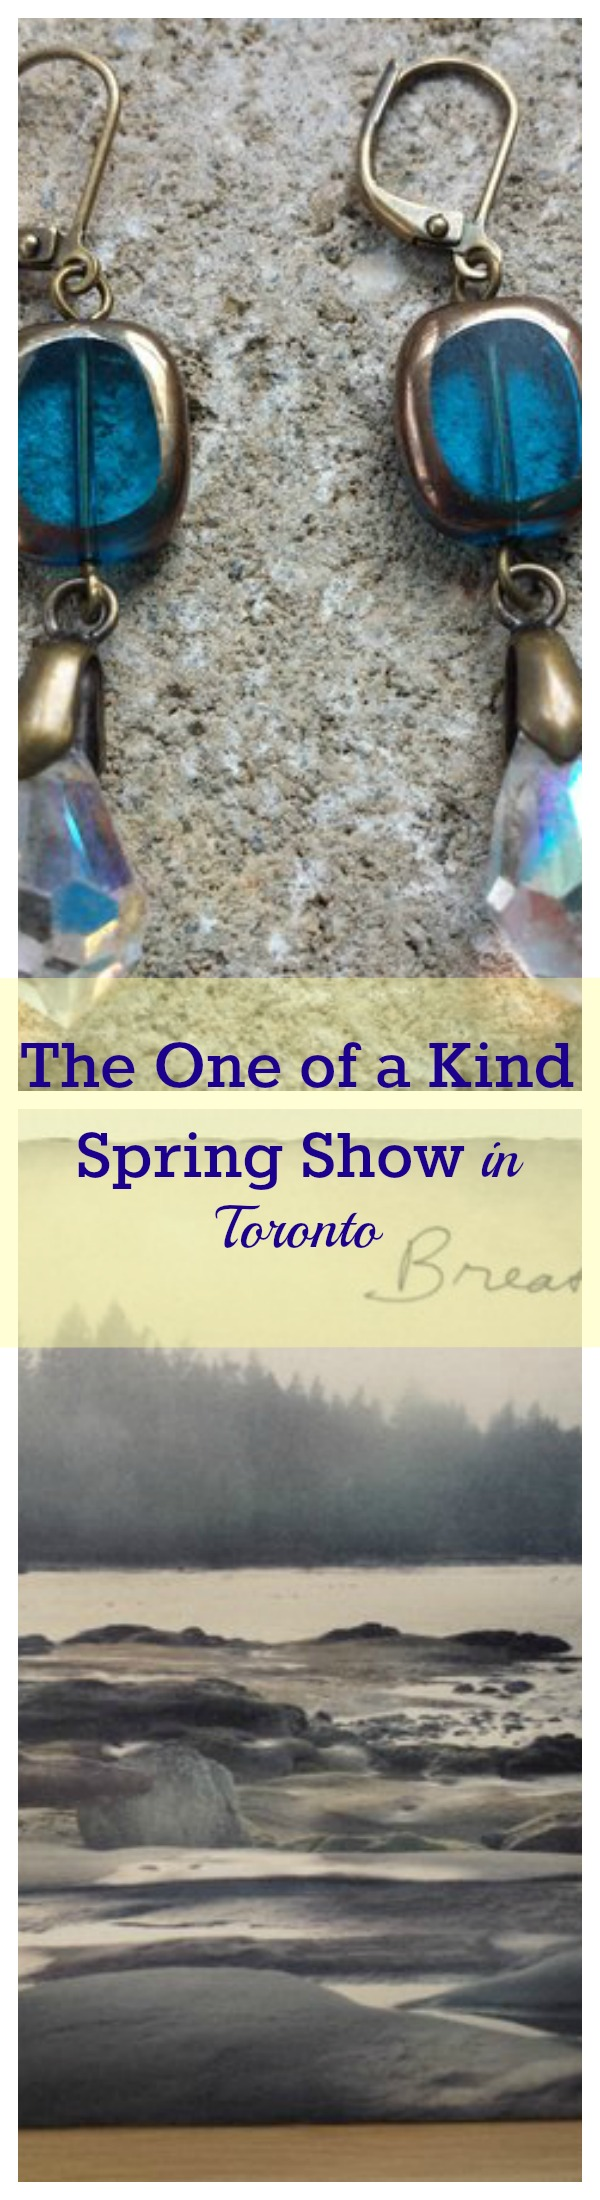 The One of a Kind Spring Show in Toronto